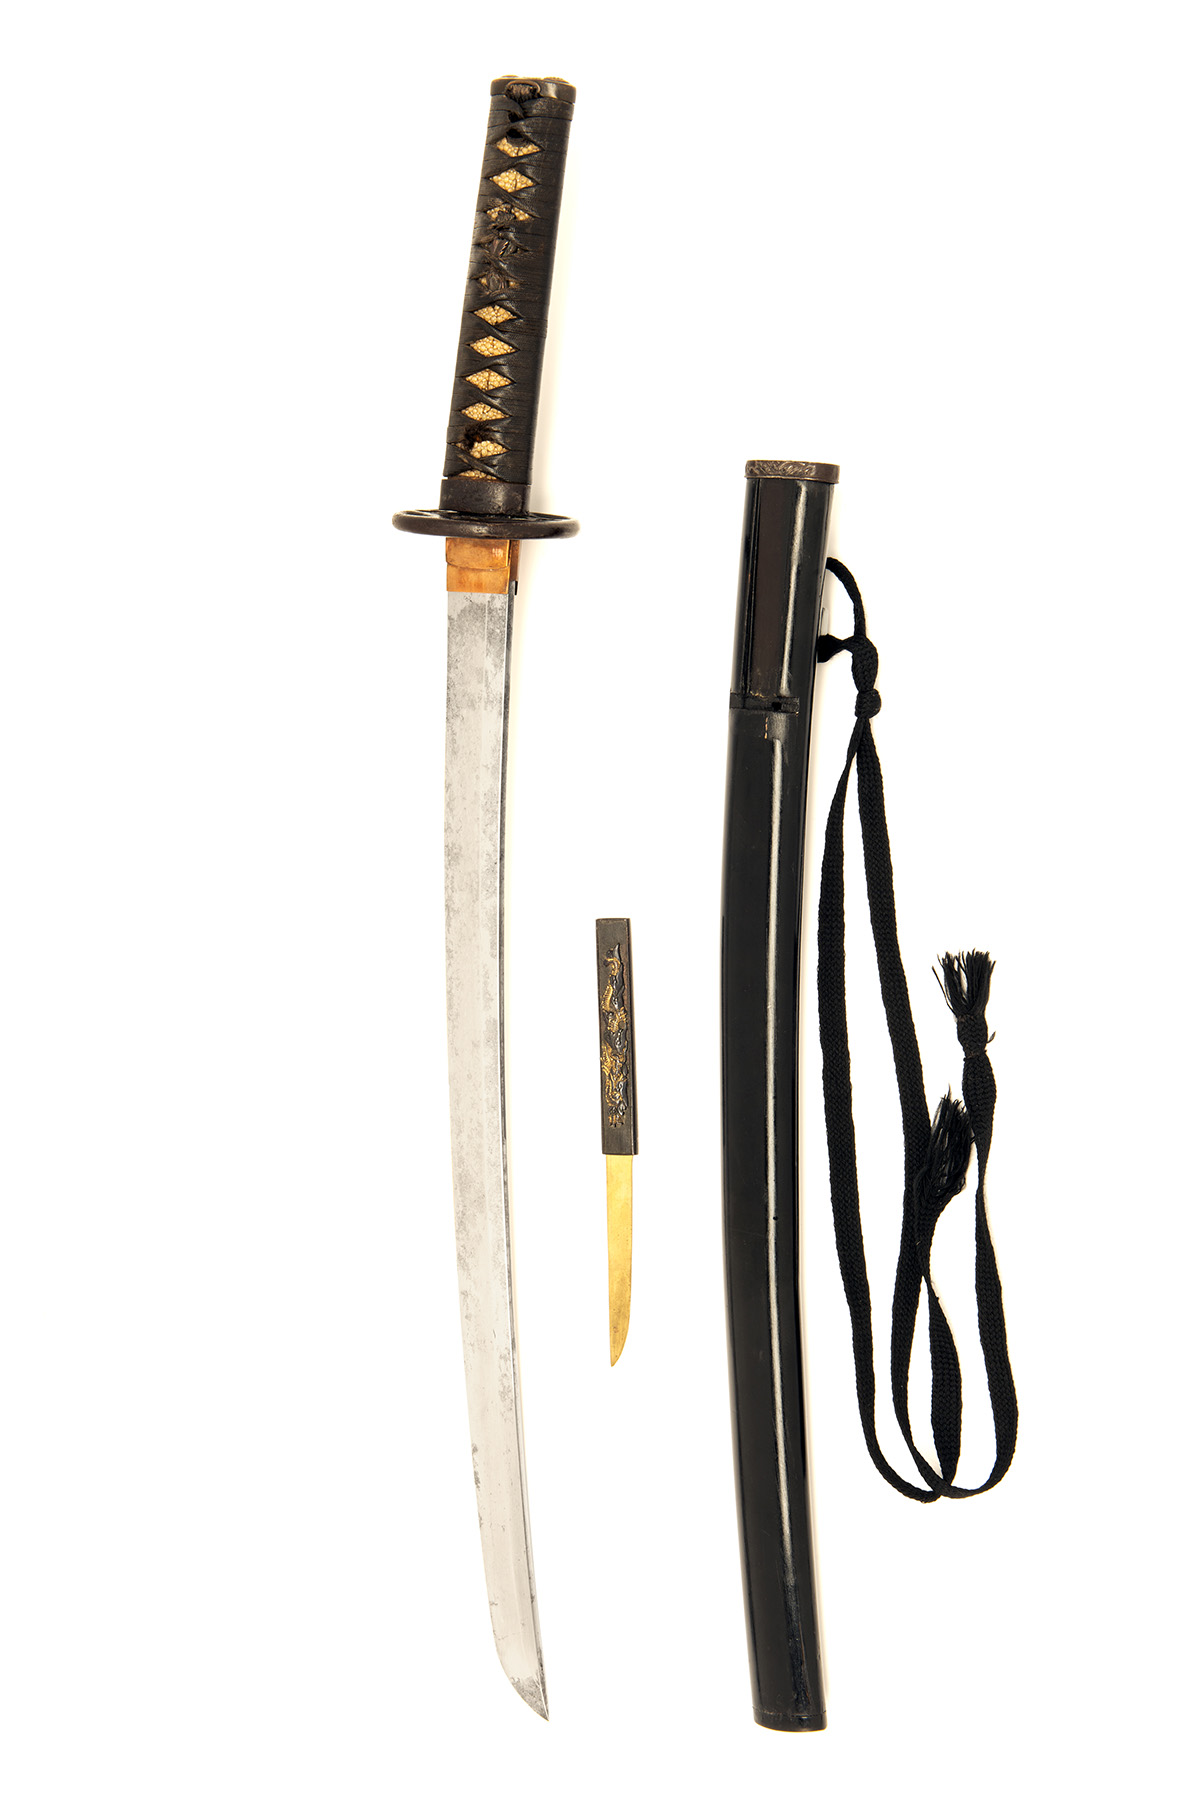 Lot 228 - A JAPANESE WAKIZASHI, probably early 18th century, with 18 1/4in. curved and re-polished blade (some